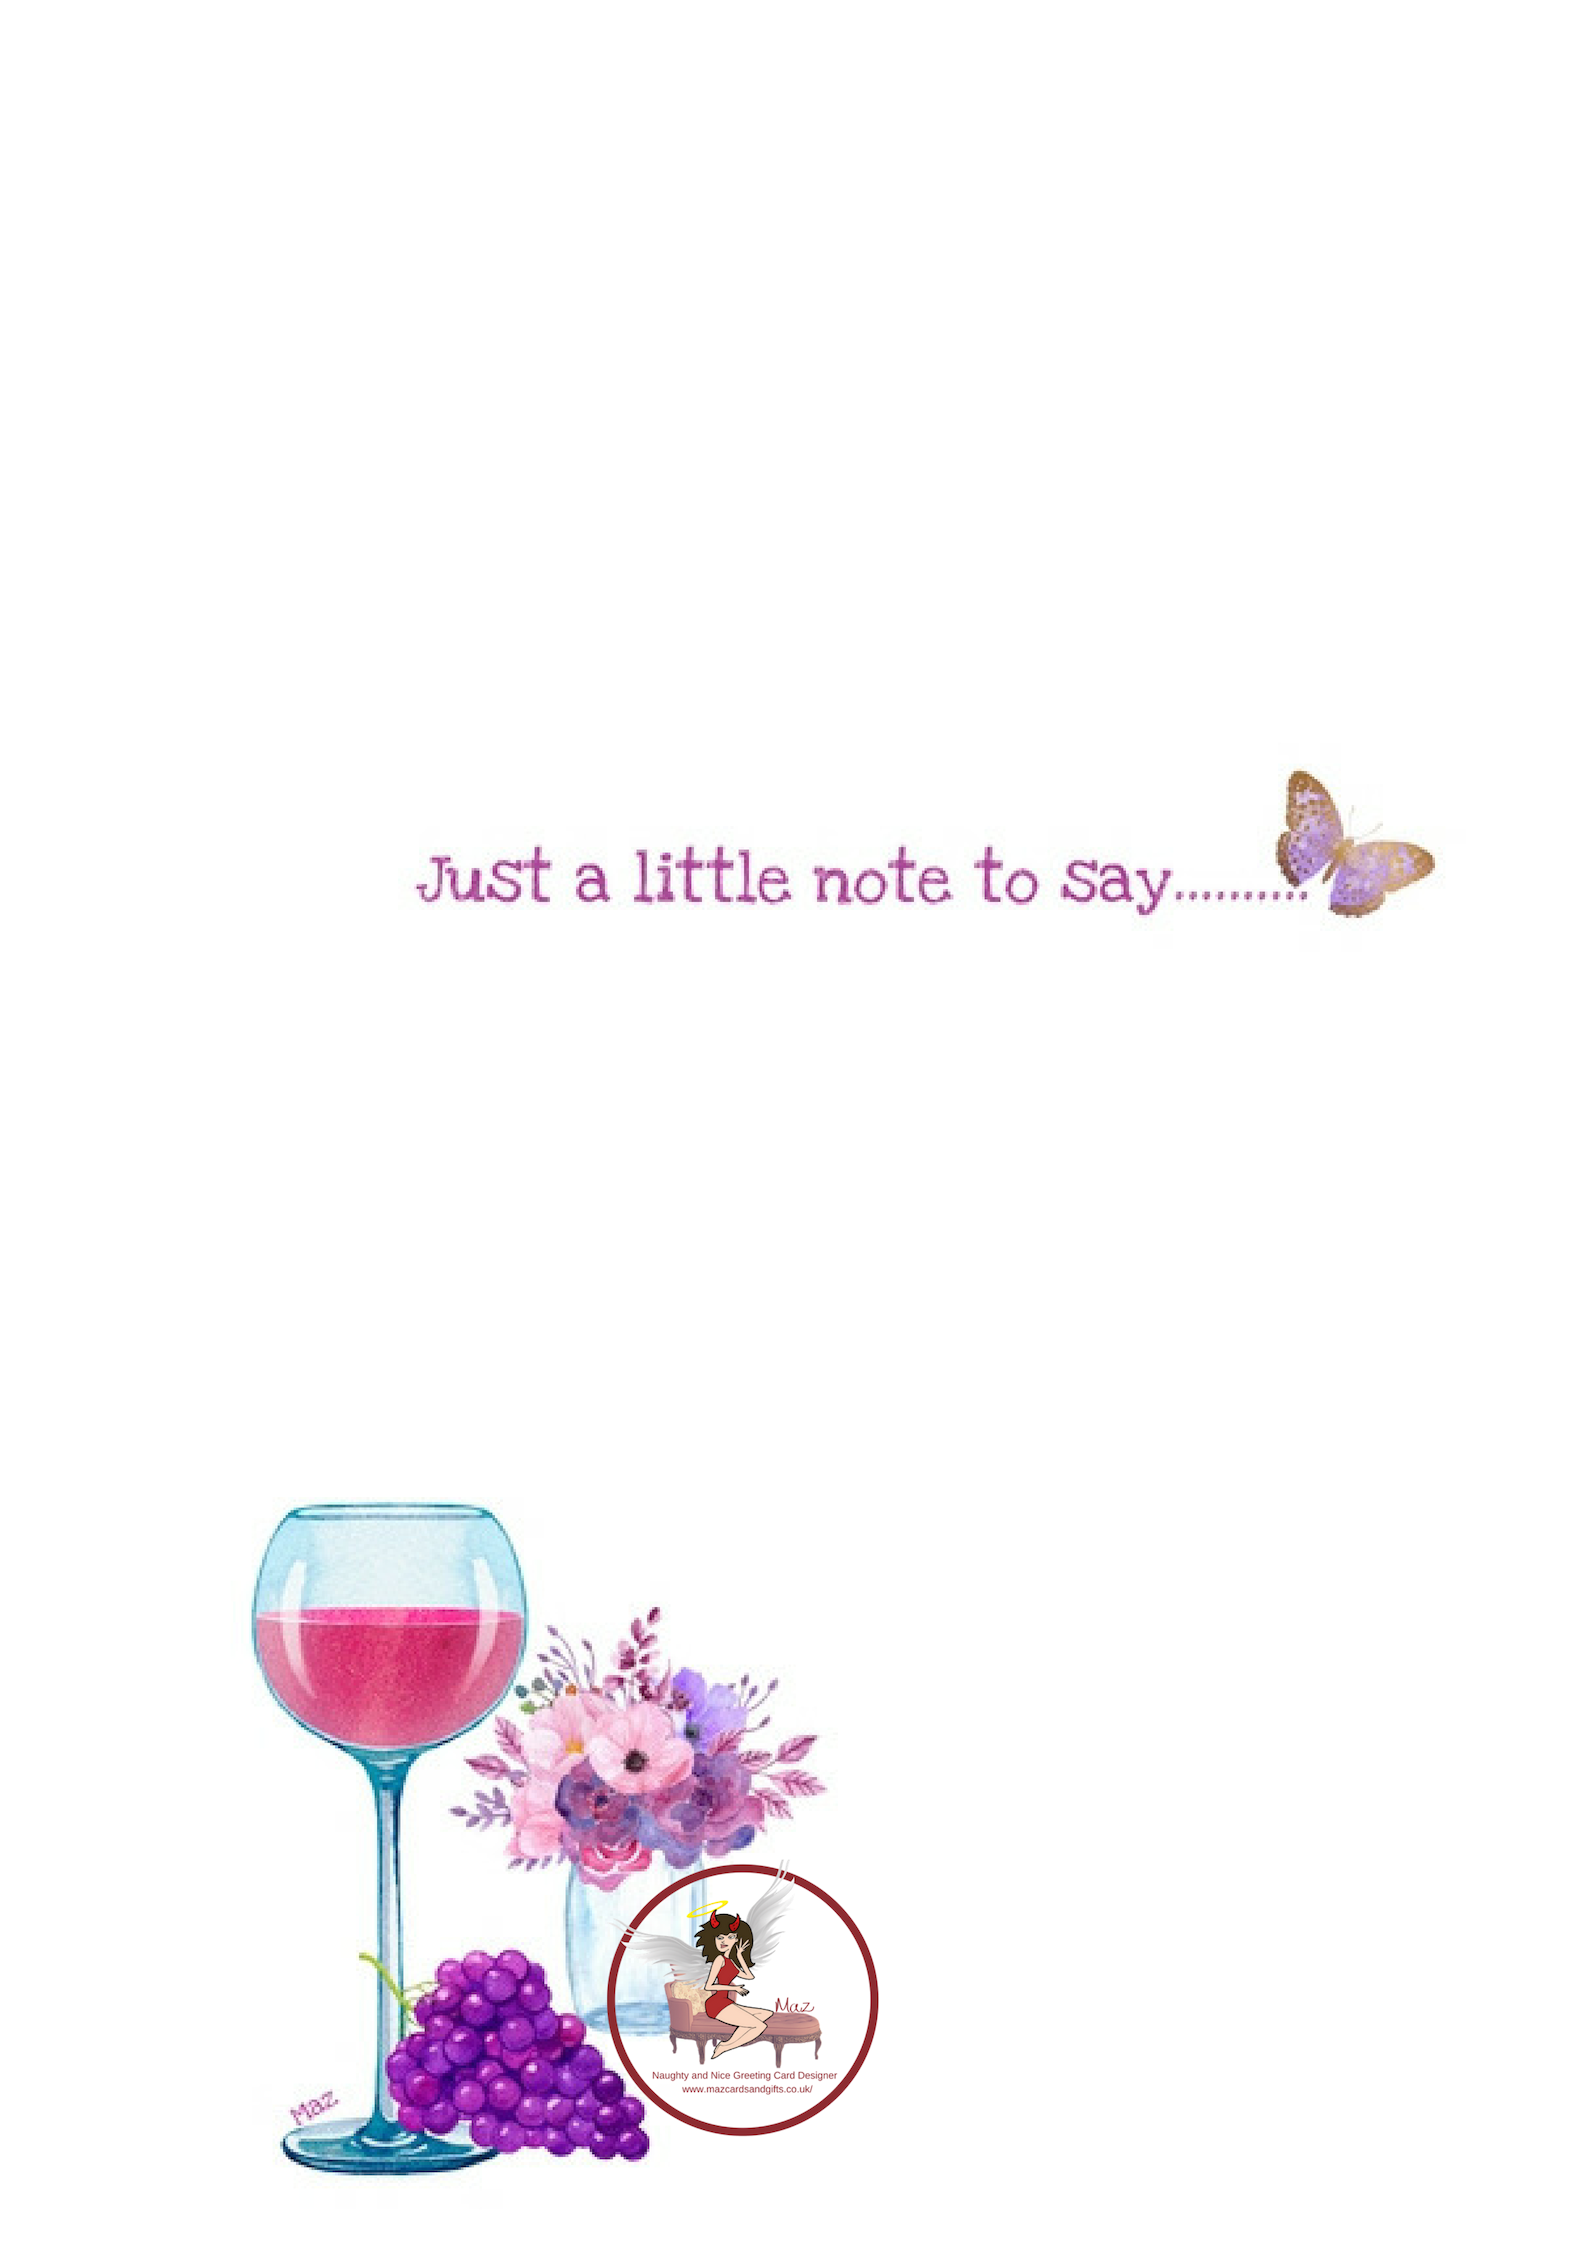 Just a little note to say ~ Wine ~ Grapes ~ Flowers ~ Order No 169